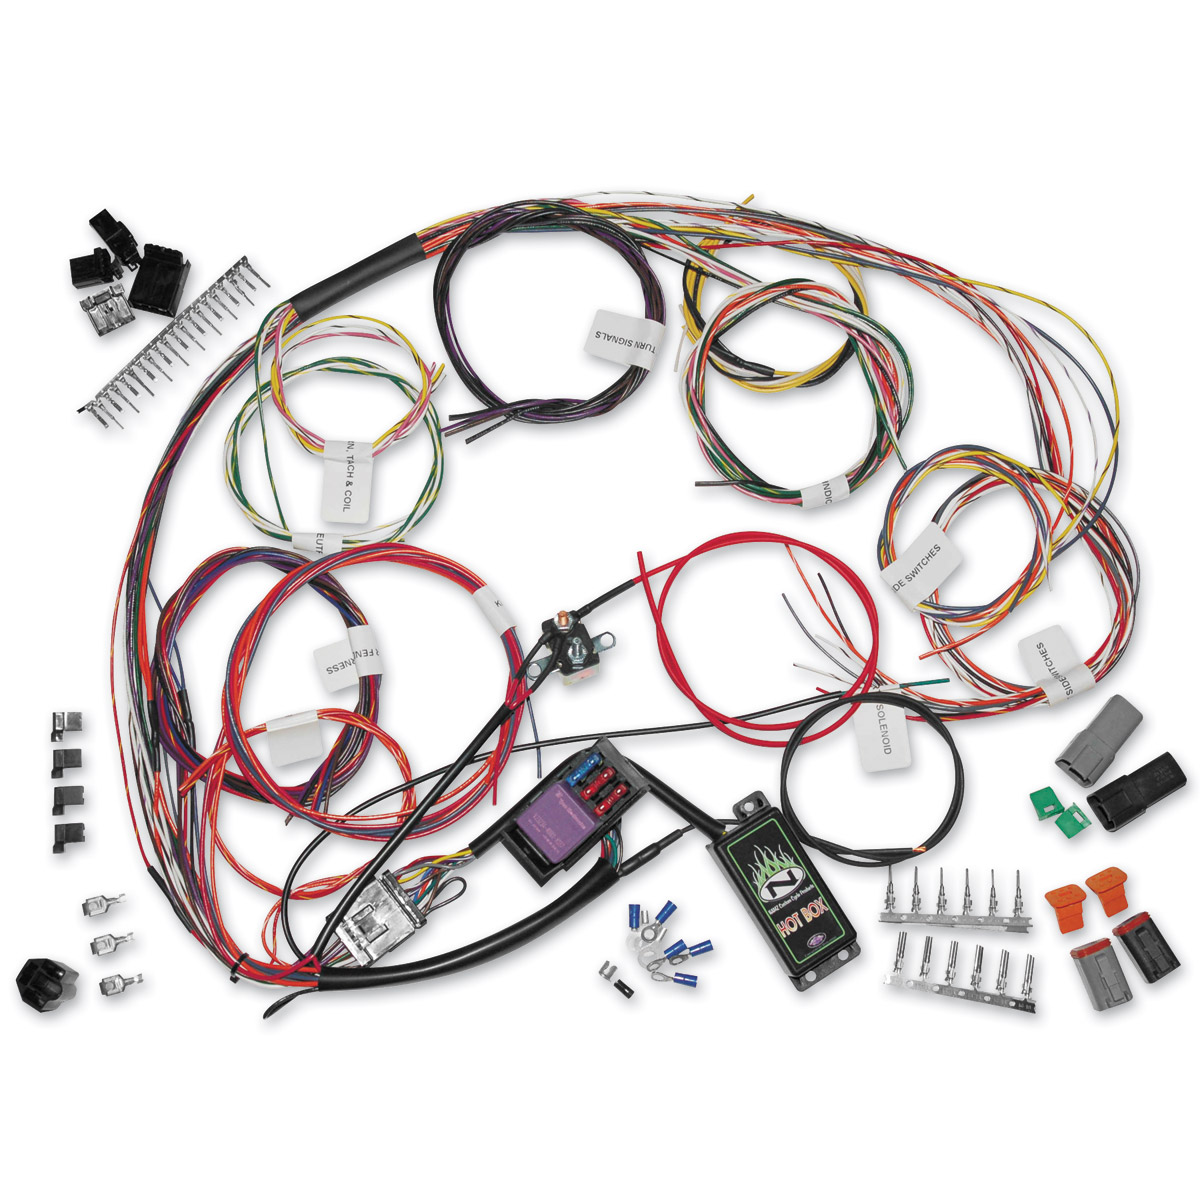 745 072_A namz custom cycle complete bike wiring harness kit 745 072 j&p custom wiring harness at pacquiaovsvargaslive.co